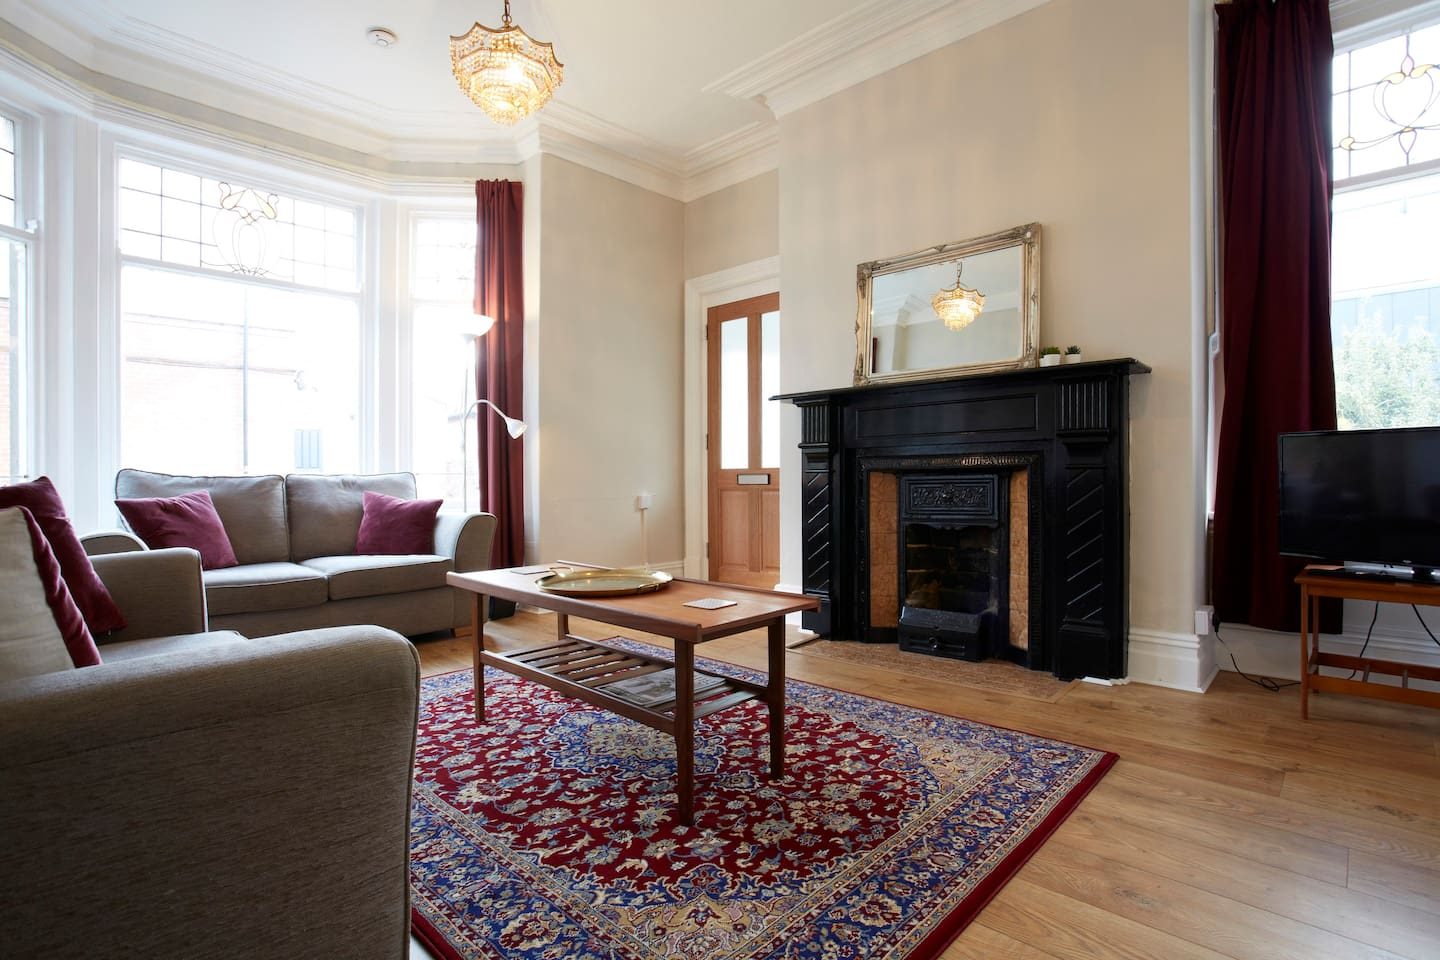 Lovely bright Victorian sitting room. The bay window and window to the side have the original stained glass panels. The  feature fireplace make it feel really cosy in the evenings.